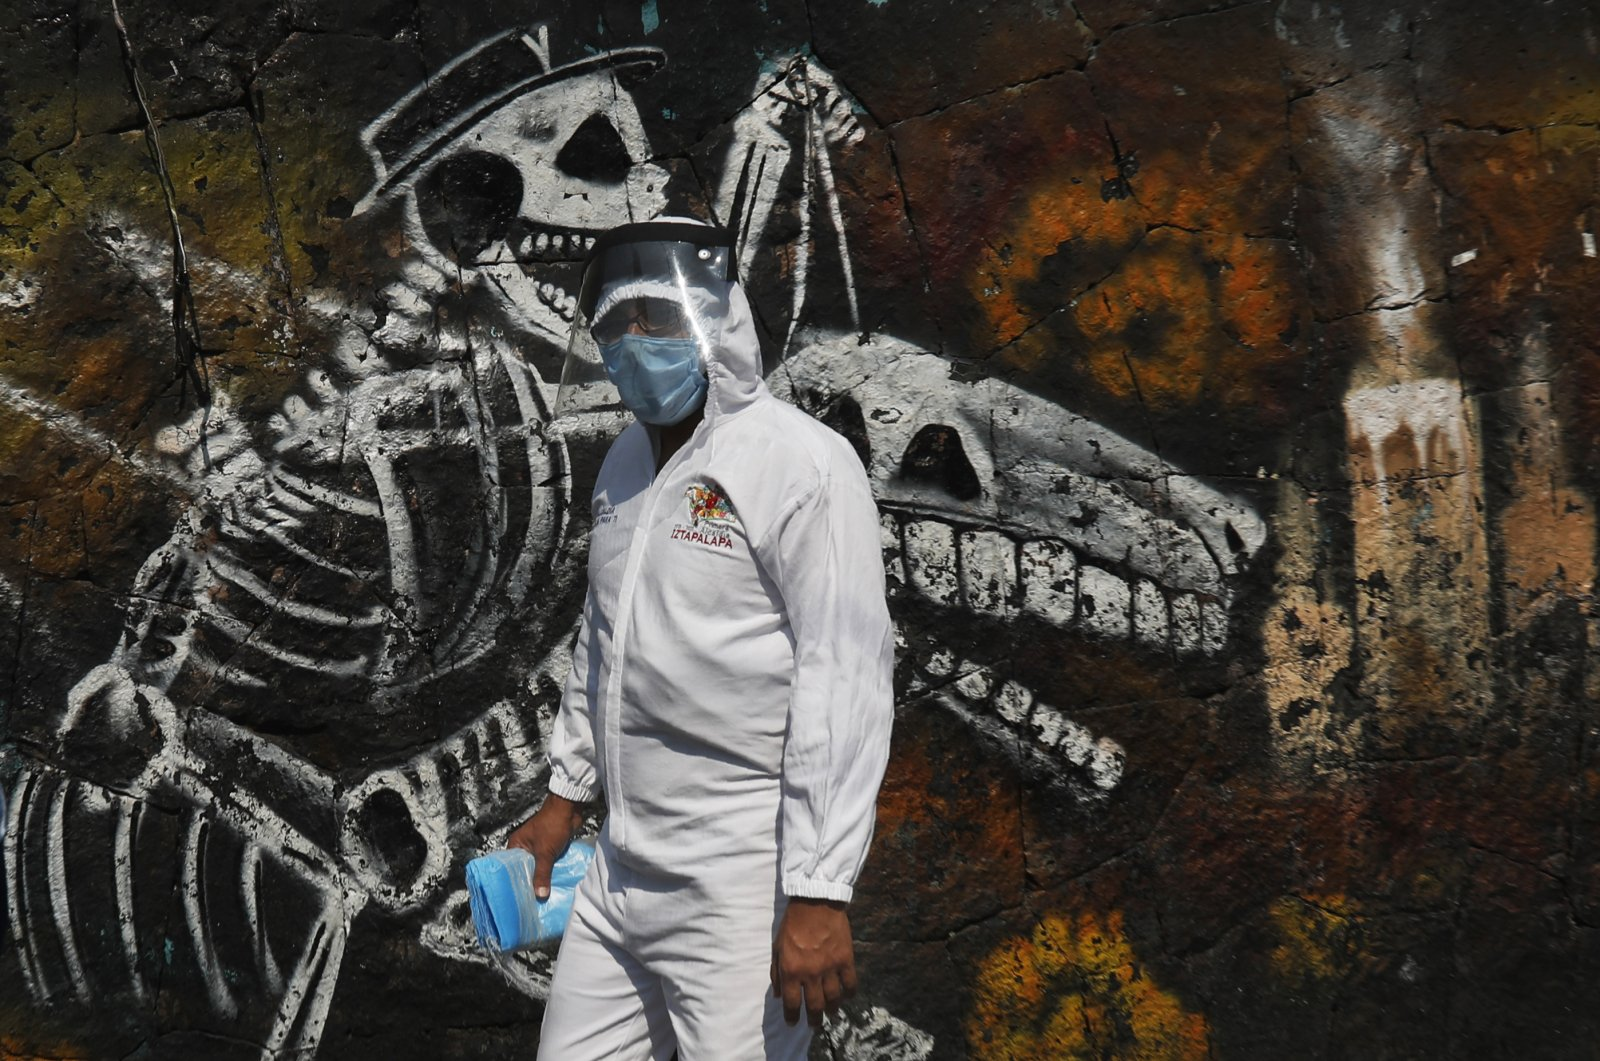 A municipal worker carries face masks to hand out at the San Nicolas Tolentino Pantheon that is making space for more burials amid the COVID-19 pandemic in the Iztapalapa area of Mexico City, Friday, May 22, 2020. (AP Photo)